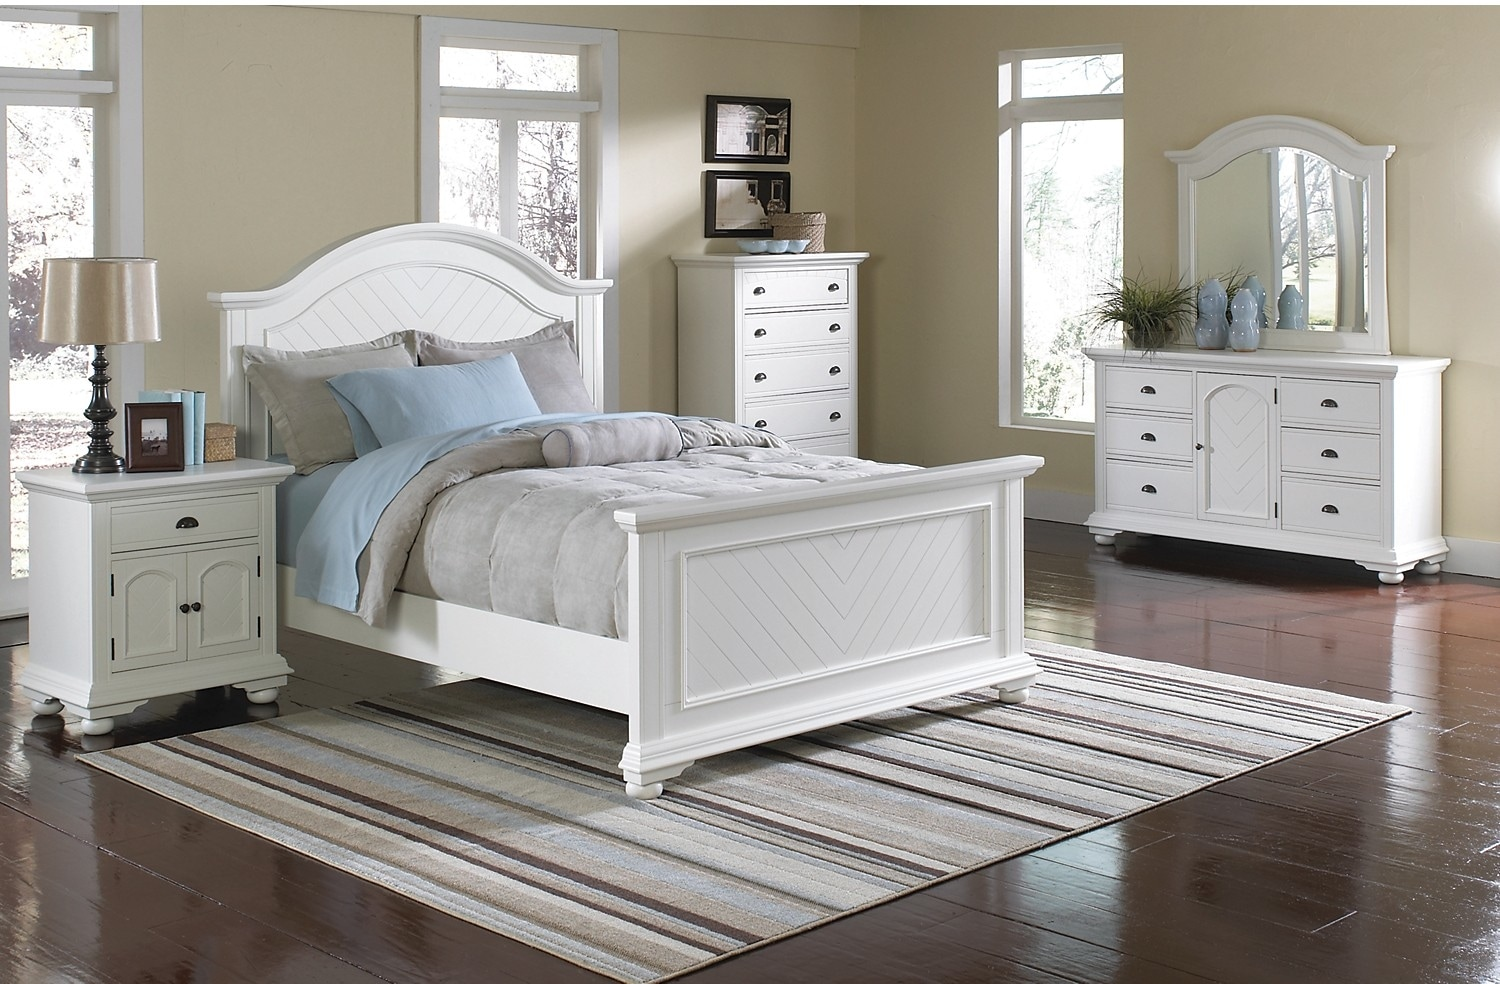 Bedroom Furniture - Casey Off White 8-Piece King Bedroom Package